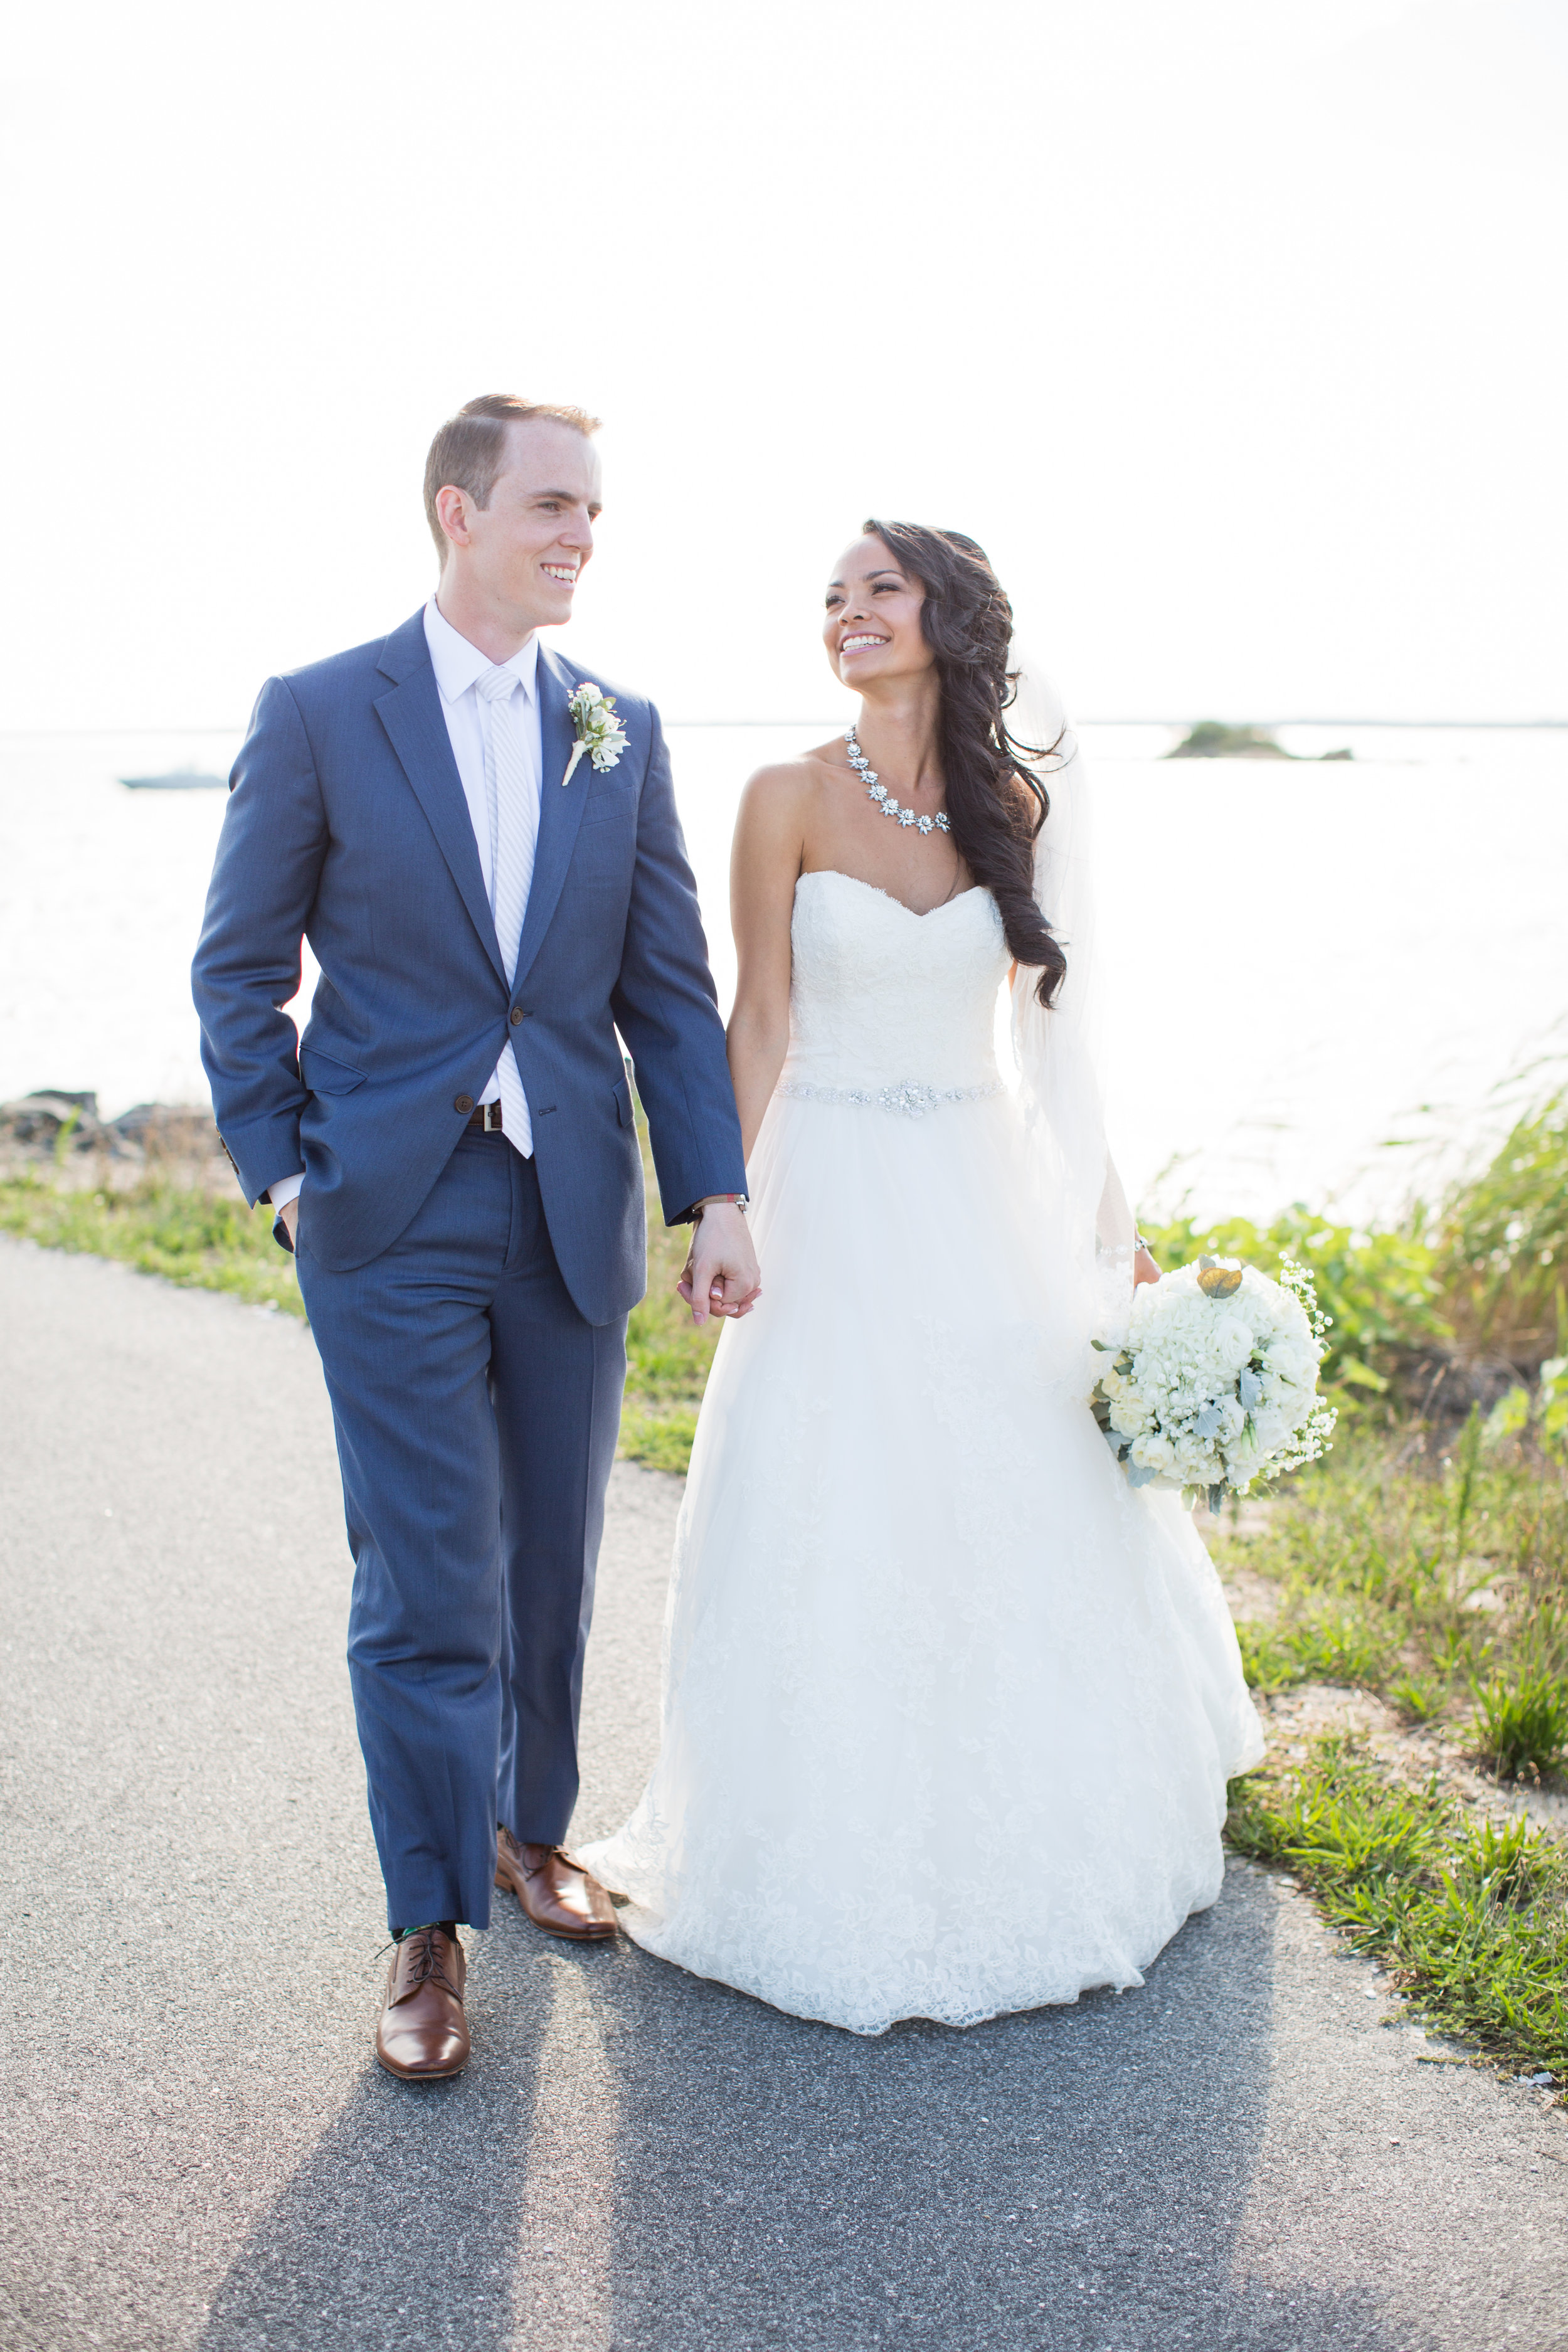 LBI Wedding Photography Bride and Groom walking hand in hand